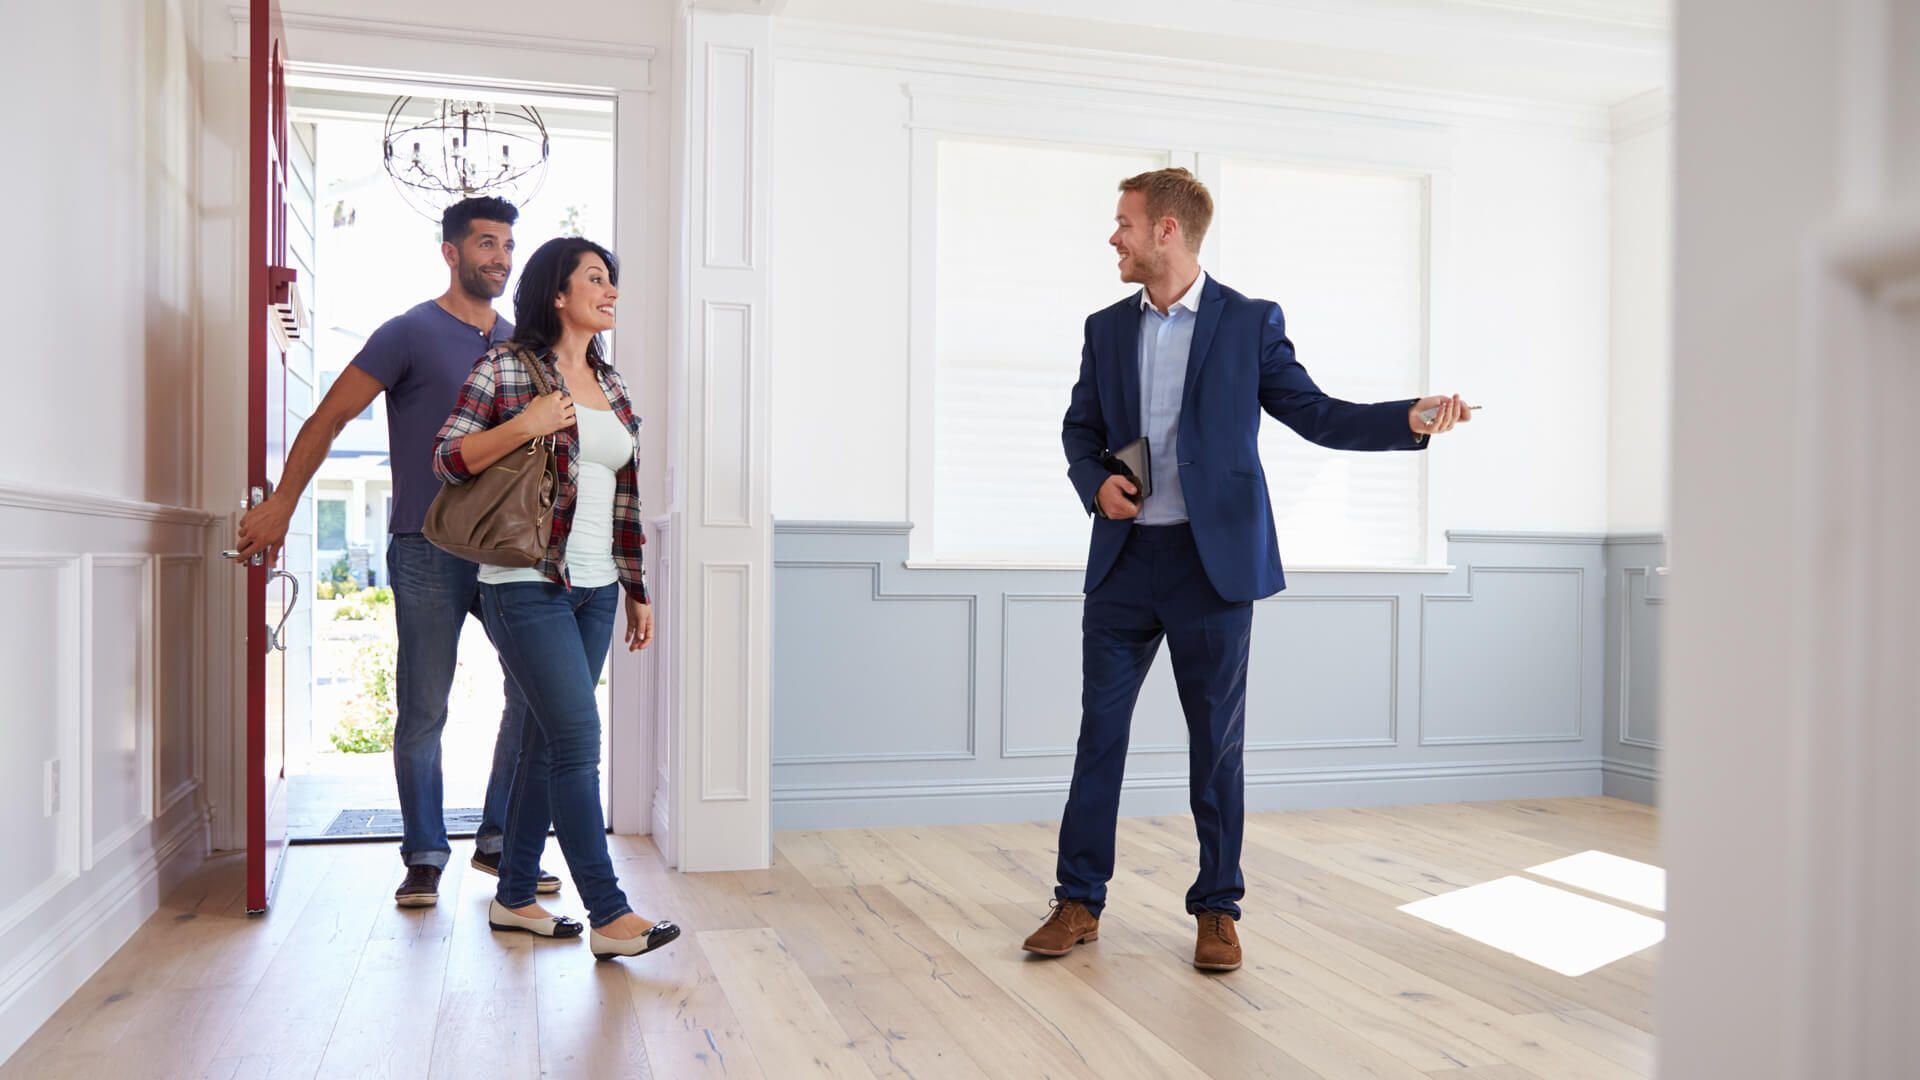 Top 10 House-Hunting Mistakes To Avoid | GOBankingRates